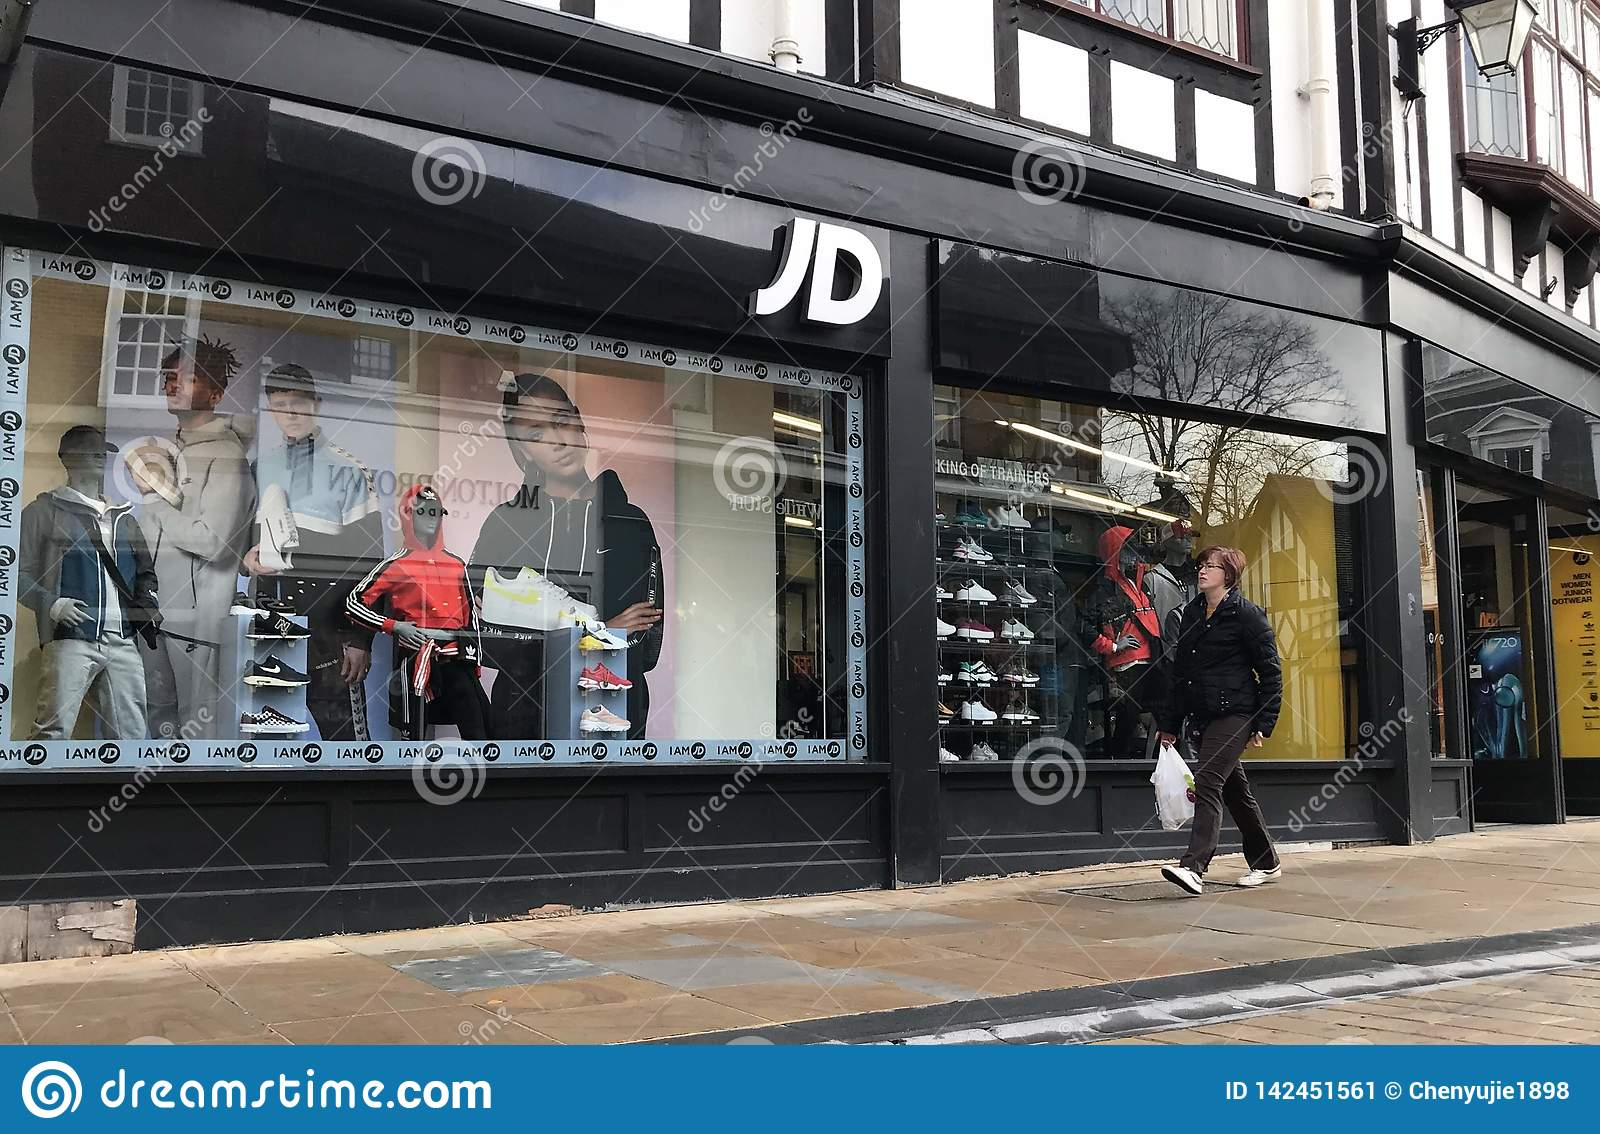 Jd Sports Jd Sports Store Editorial Photo Image Of Chothes United